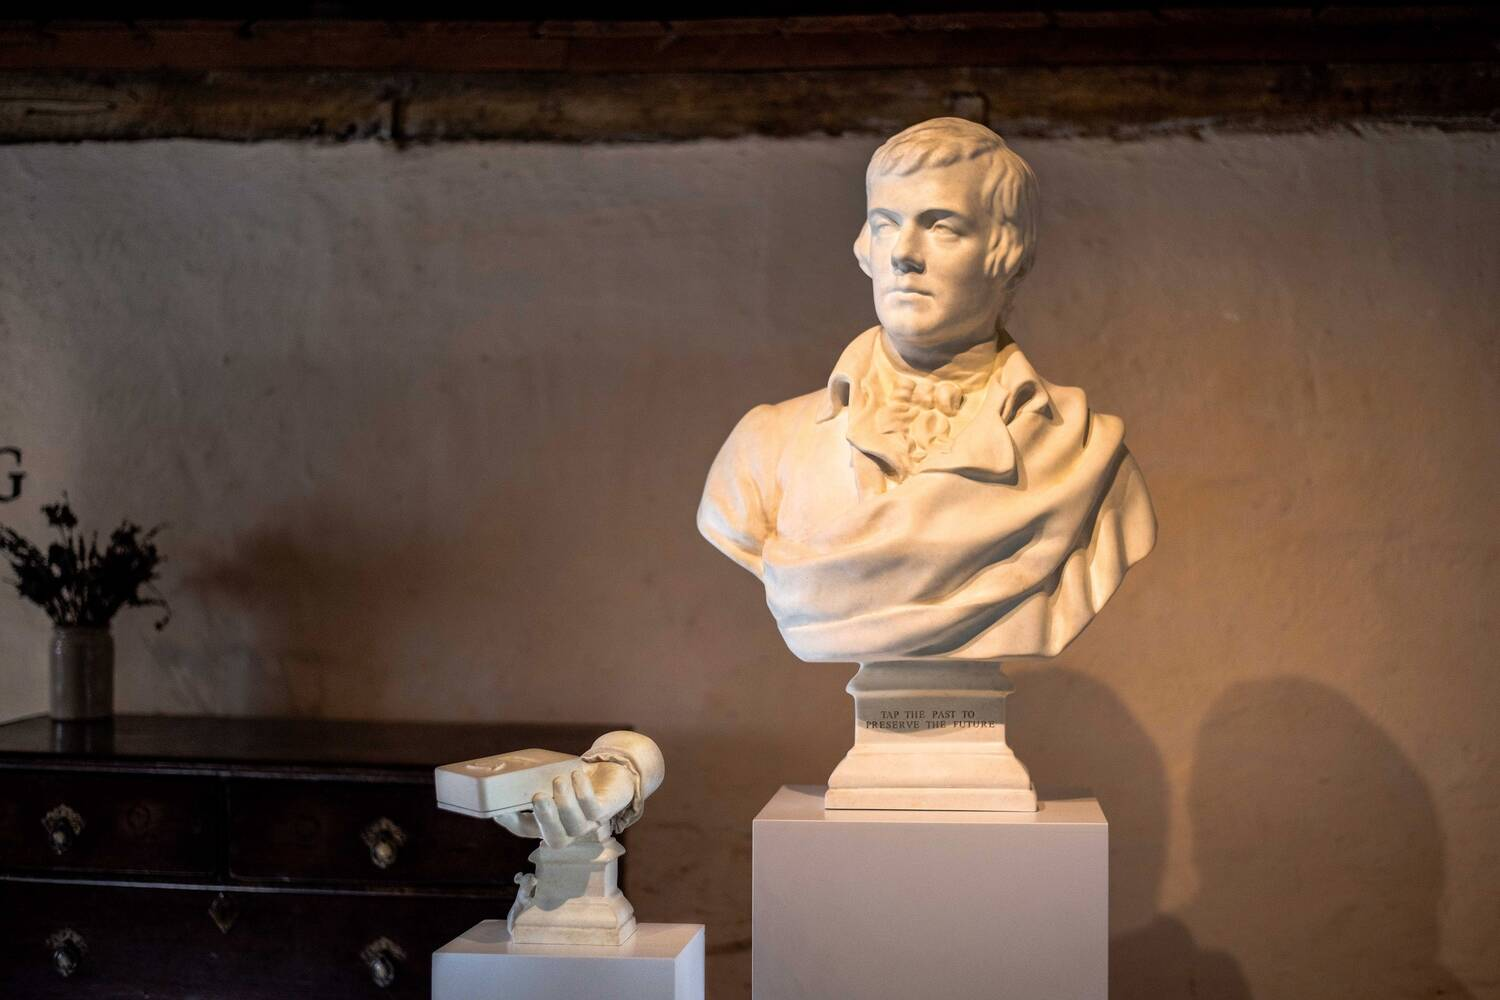 A replica bust of Burns is accepting contactless donations at the Robert Burns Birthplace Museum